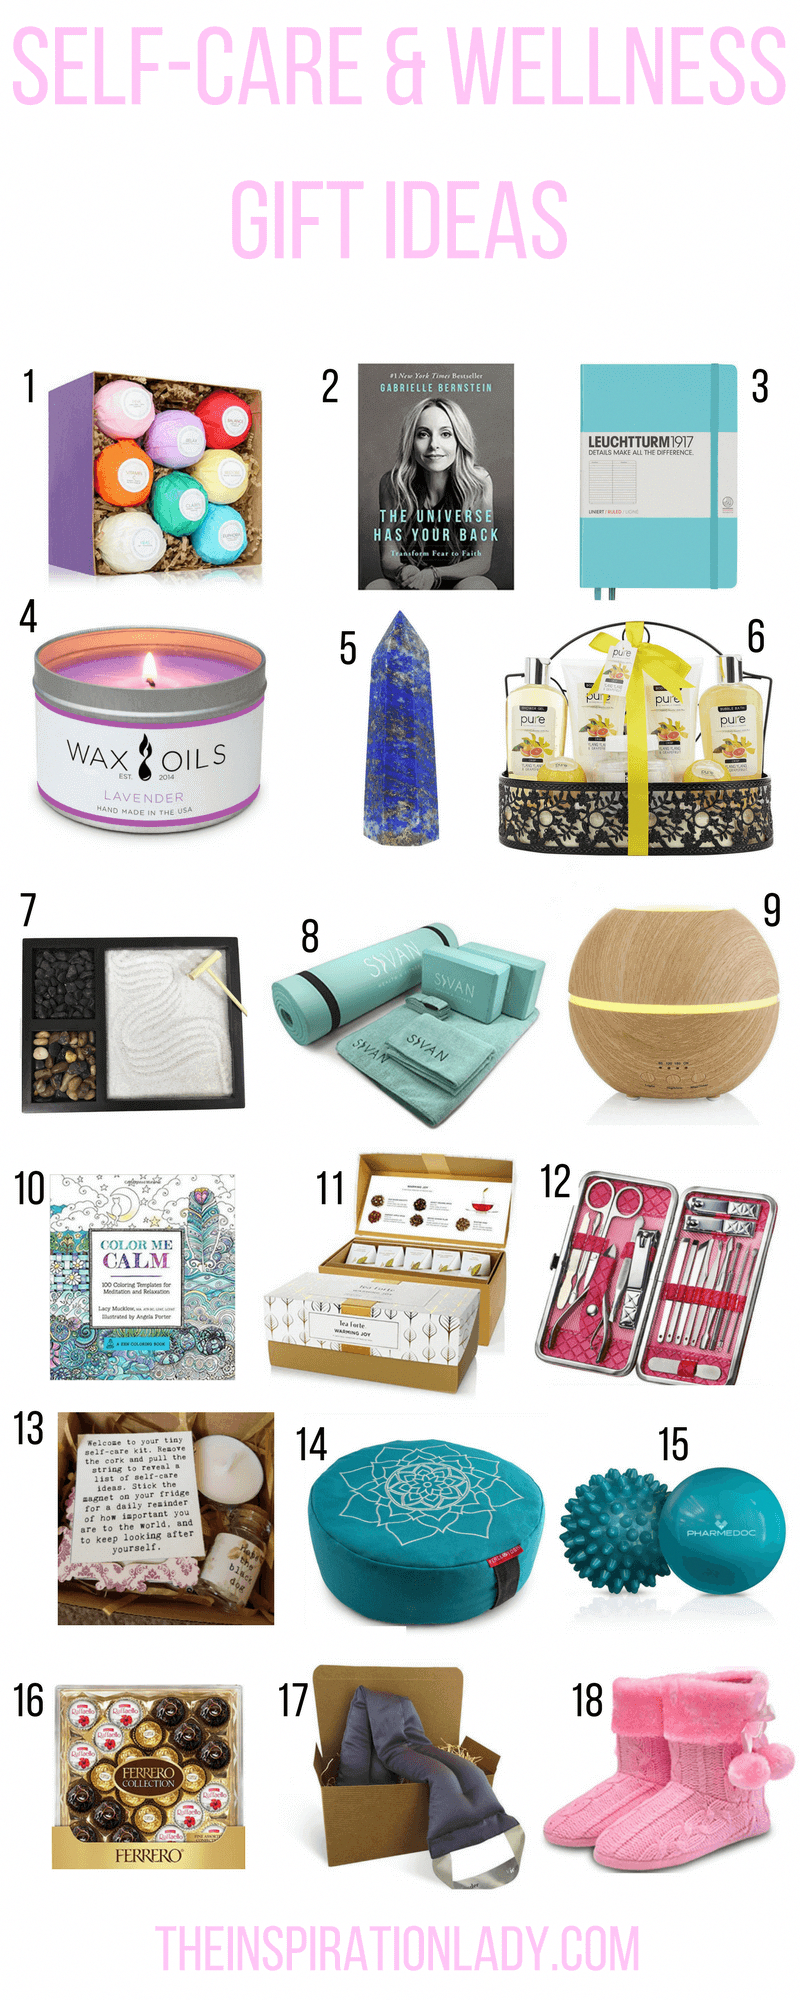 22 Self-Care and Wellness Gift Ideas